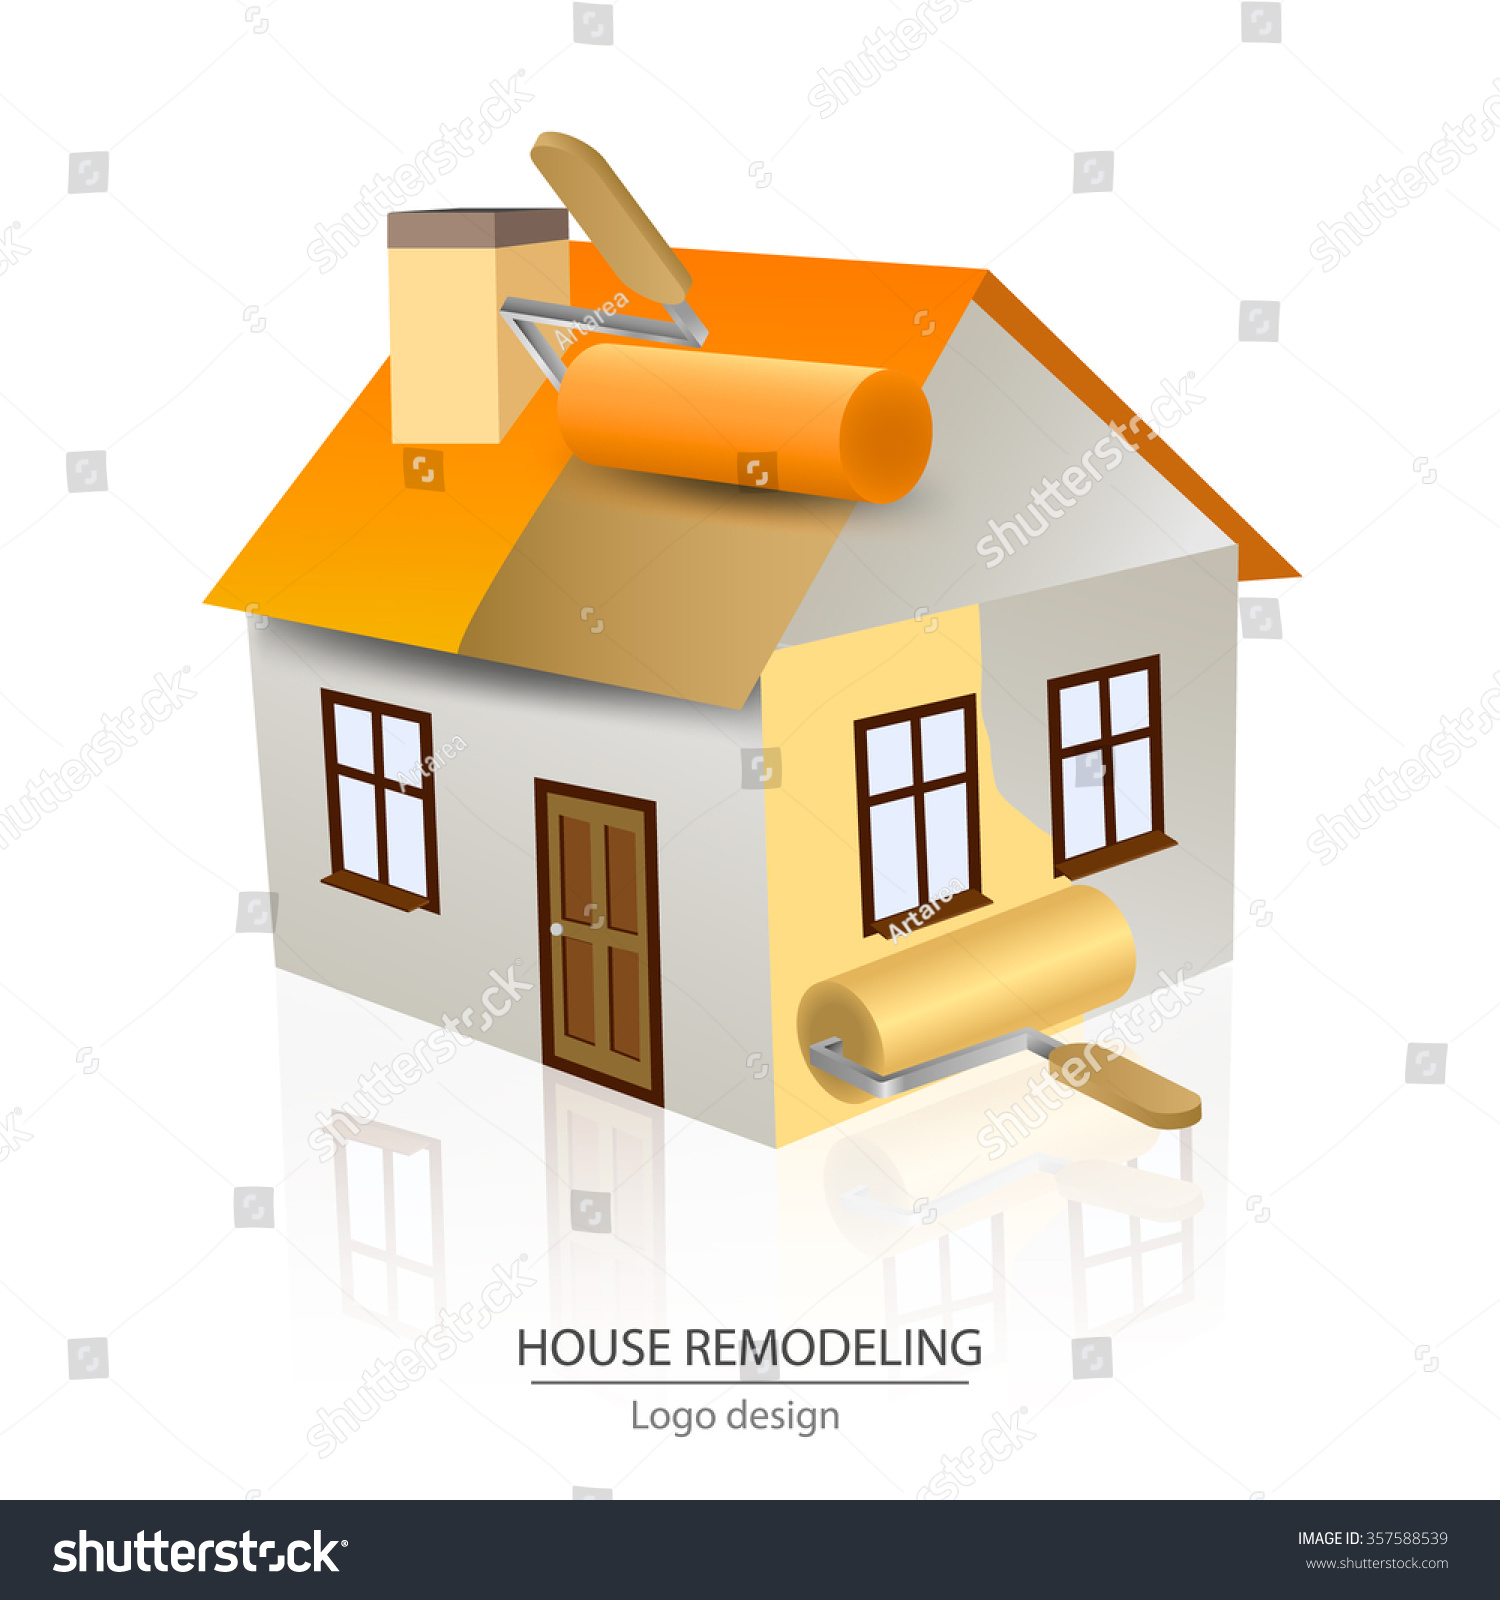 House Remodeling Logo Design Paint Roller Stock Vector